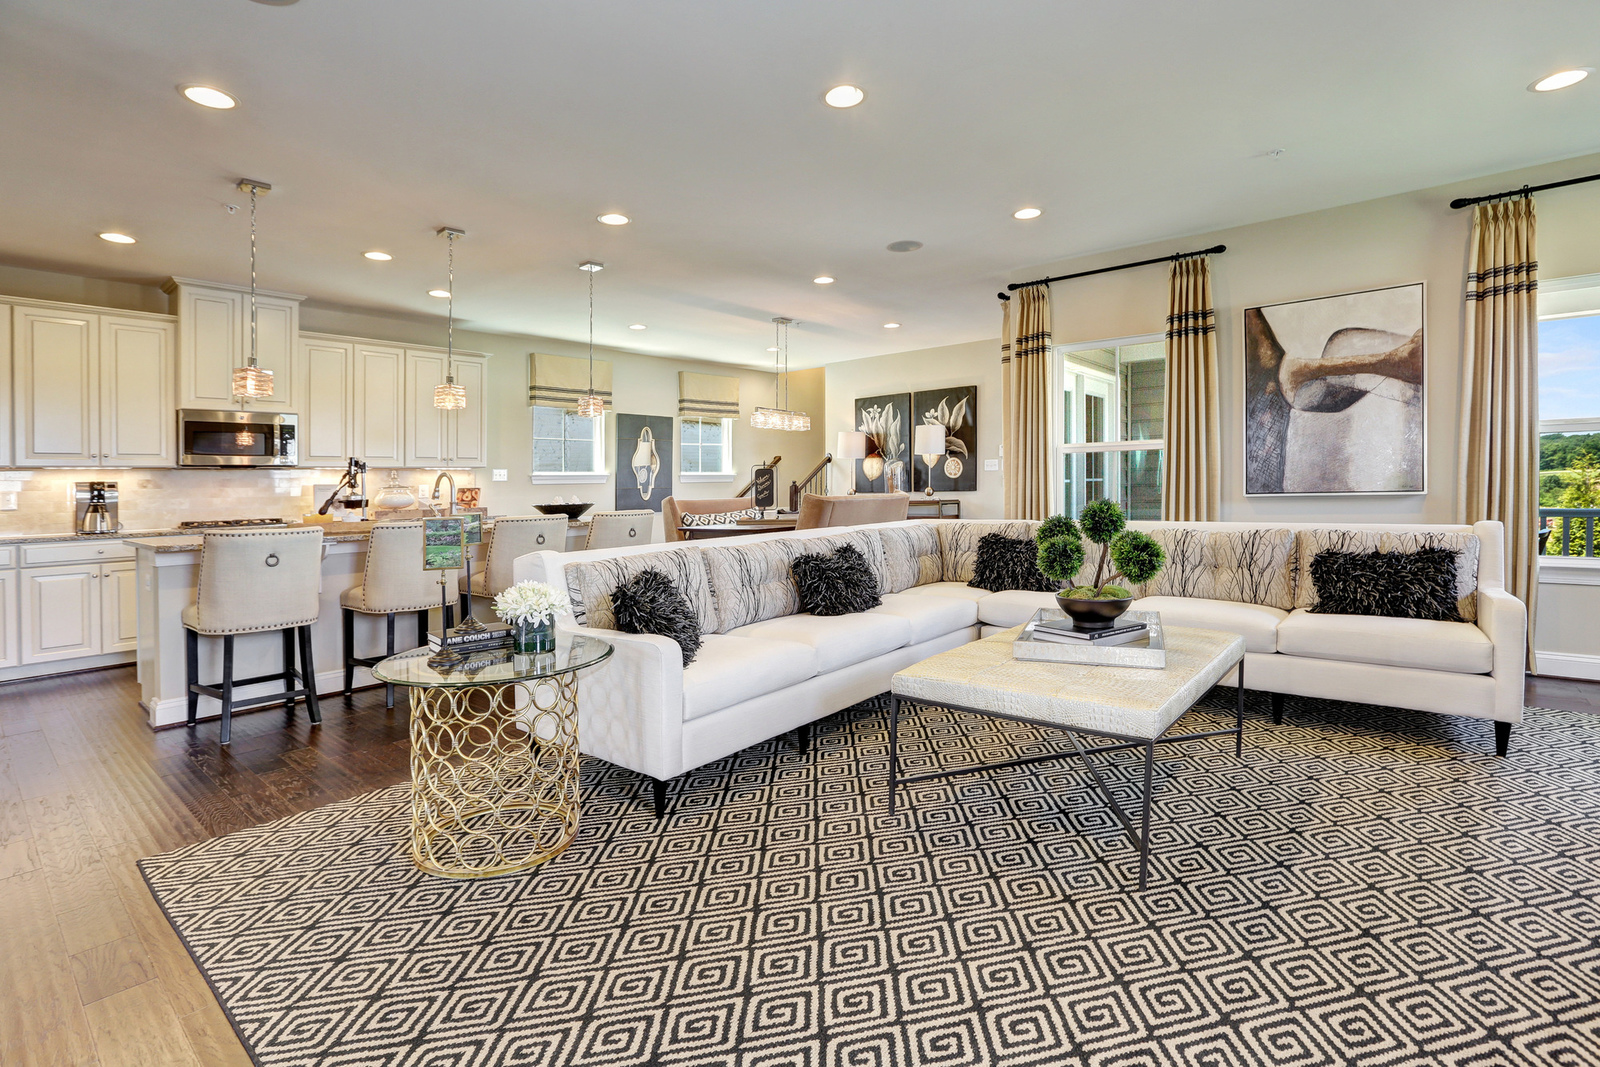 New Homes For Sale At Landsdale Single Family Homes In Monrovia Md